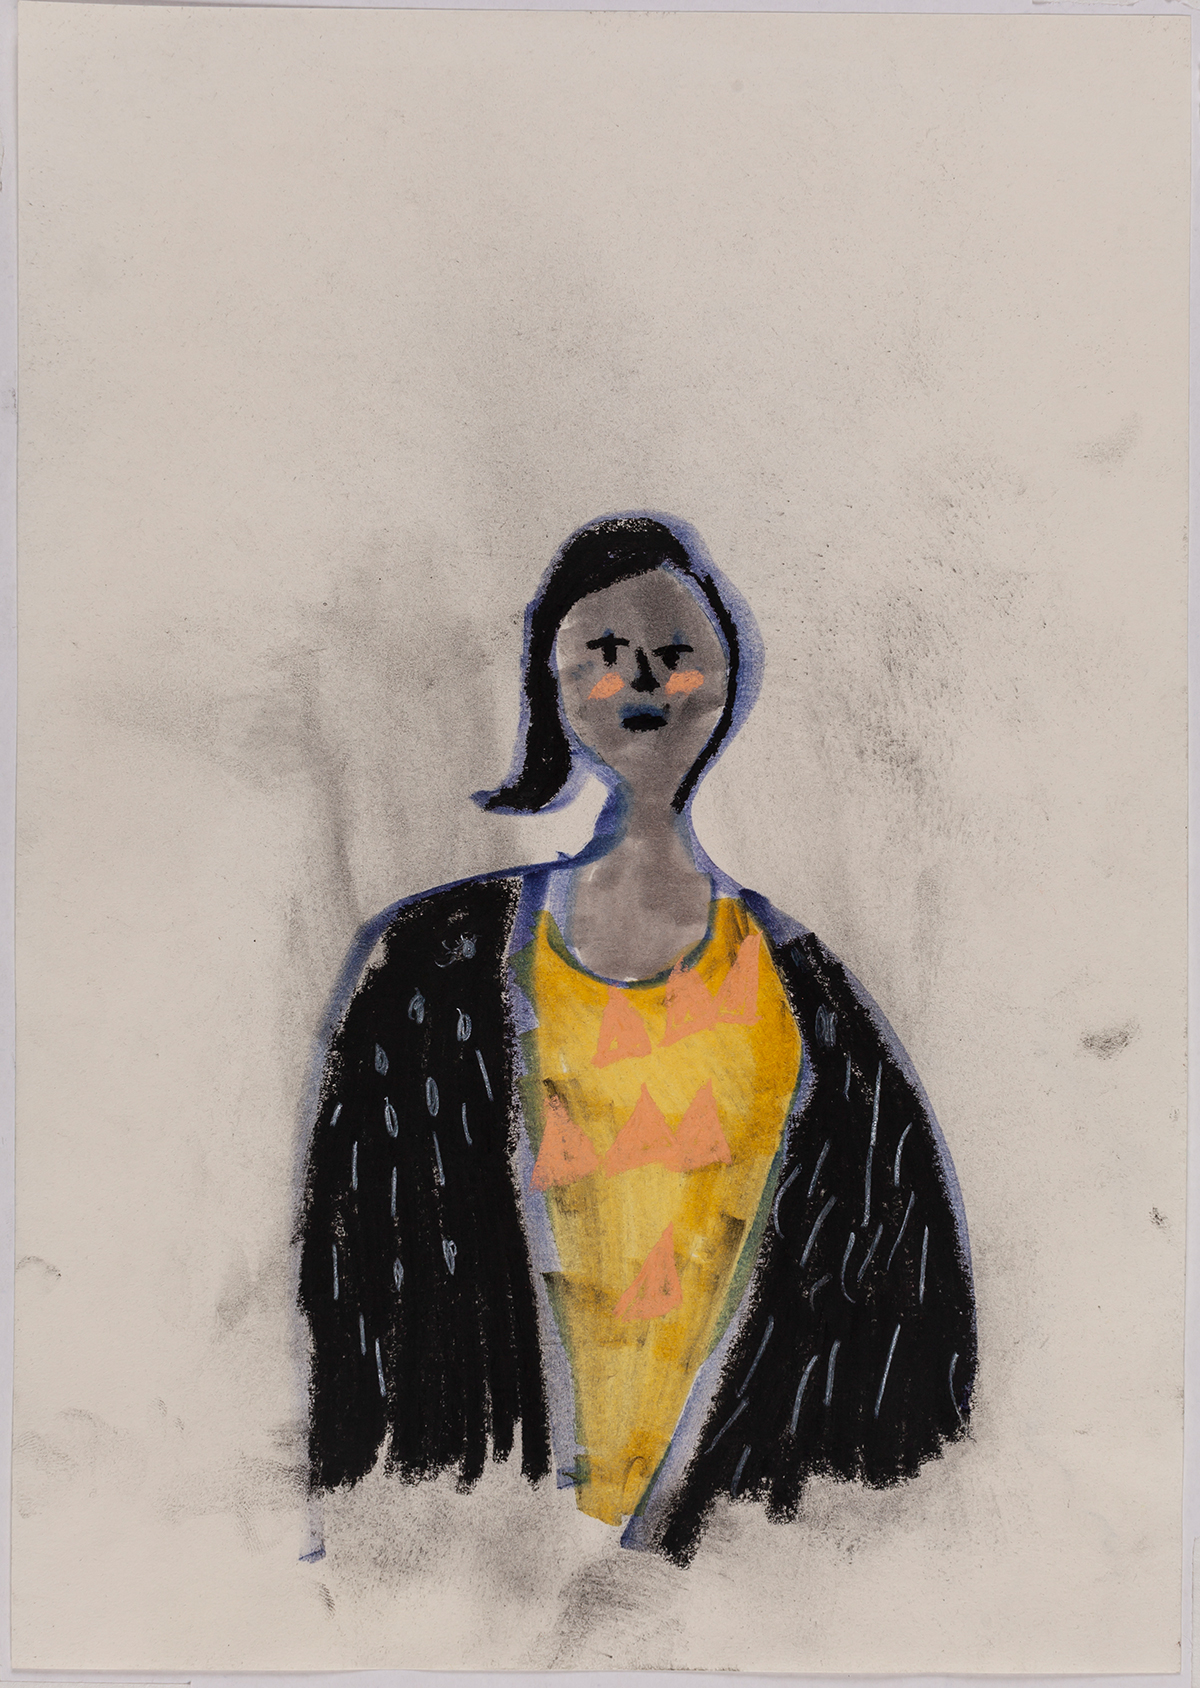 Série Retratos da Bia | Bia's Portraits Series    2016   técnica mista sobre papel |  mixed media on paper   29.7 x 21 cm